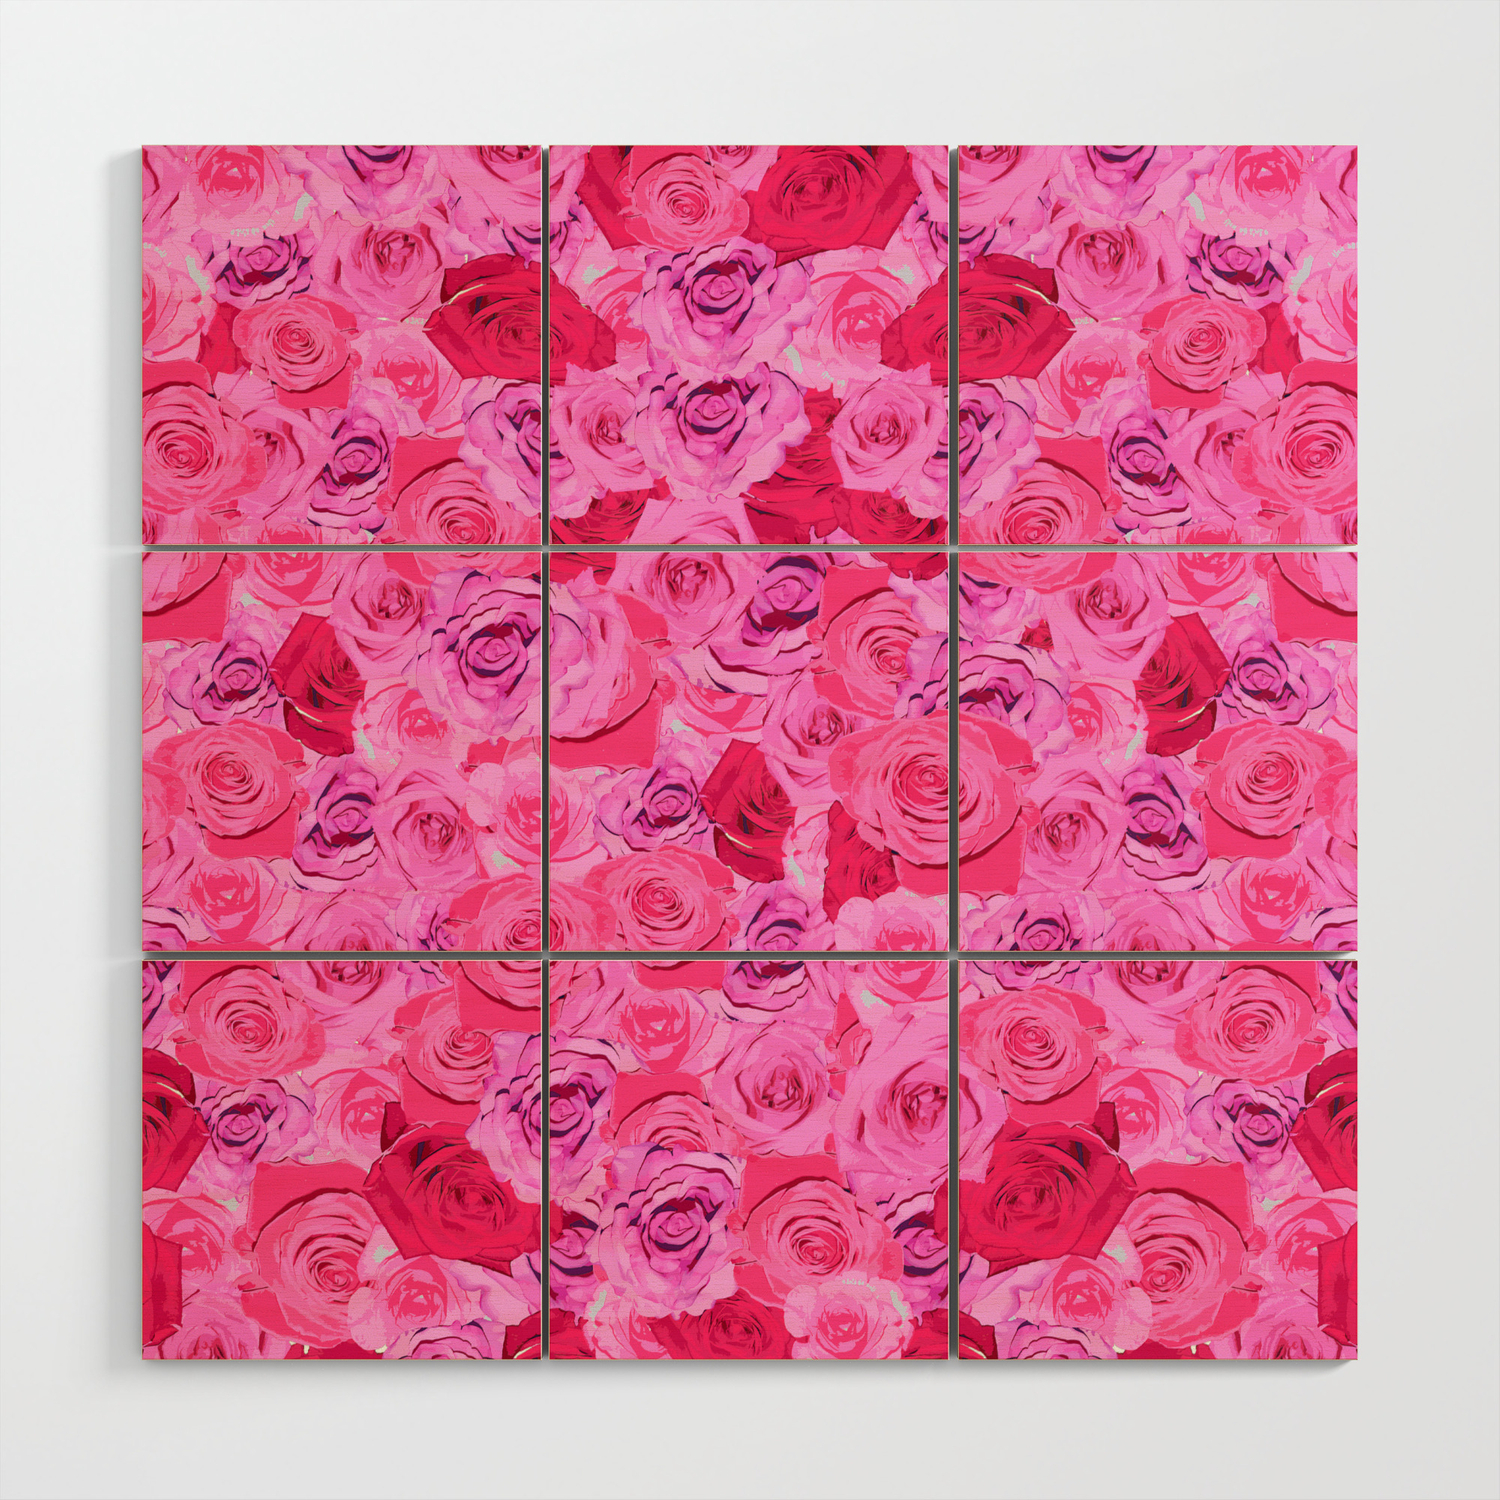 Floral Pink And Red Roses Tumblr Aesthetic Wood Wall Art By